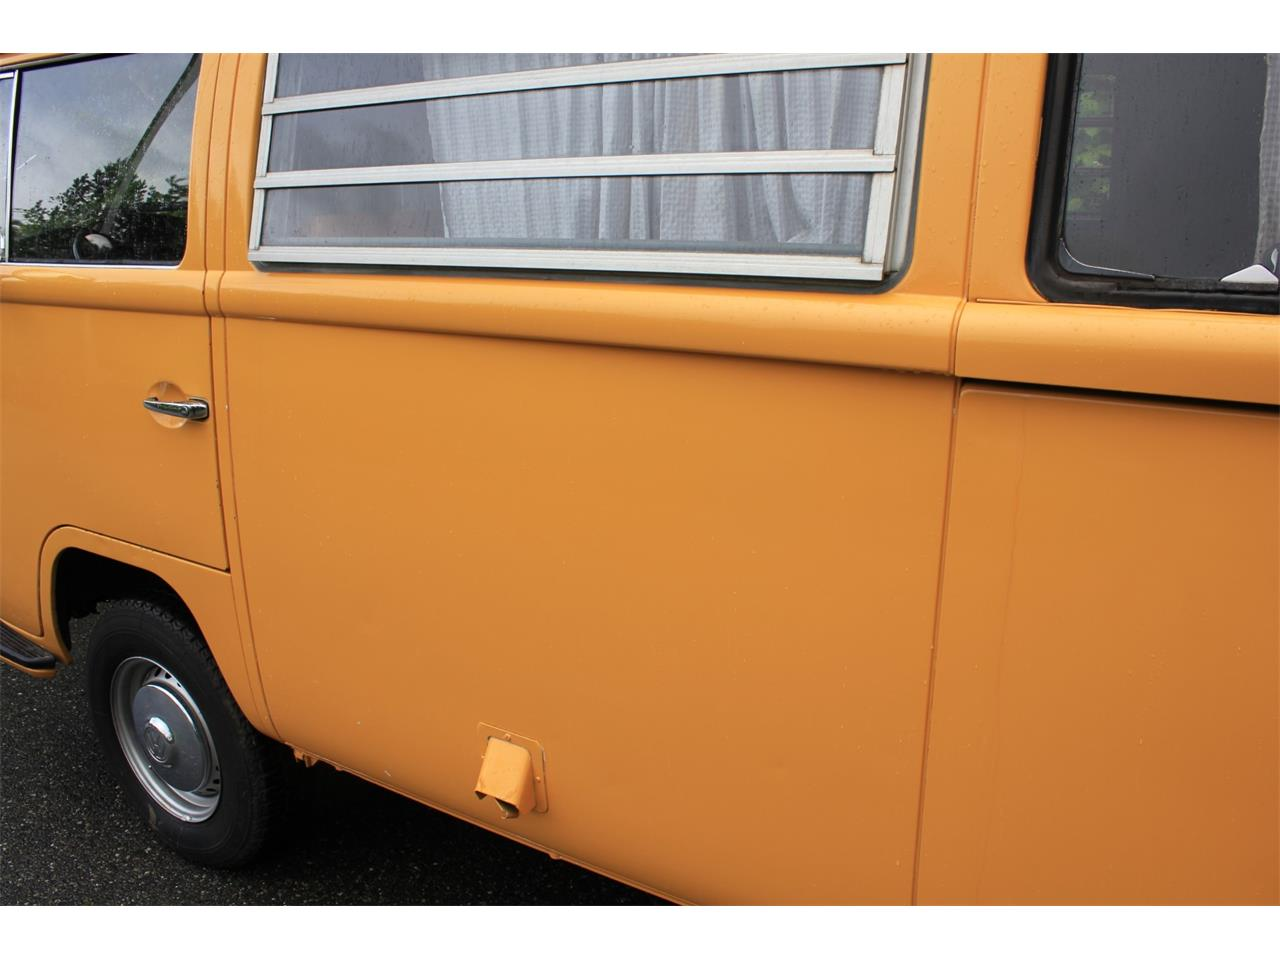 1971 volkswagen bus for sale classiccars com cc 1367599 1971 volkswagen bus for sale